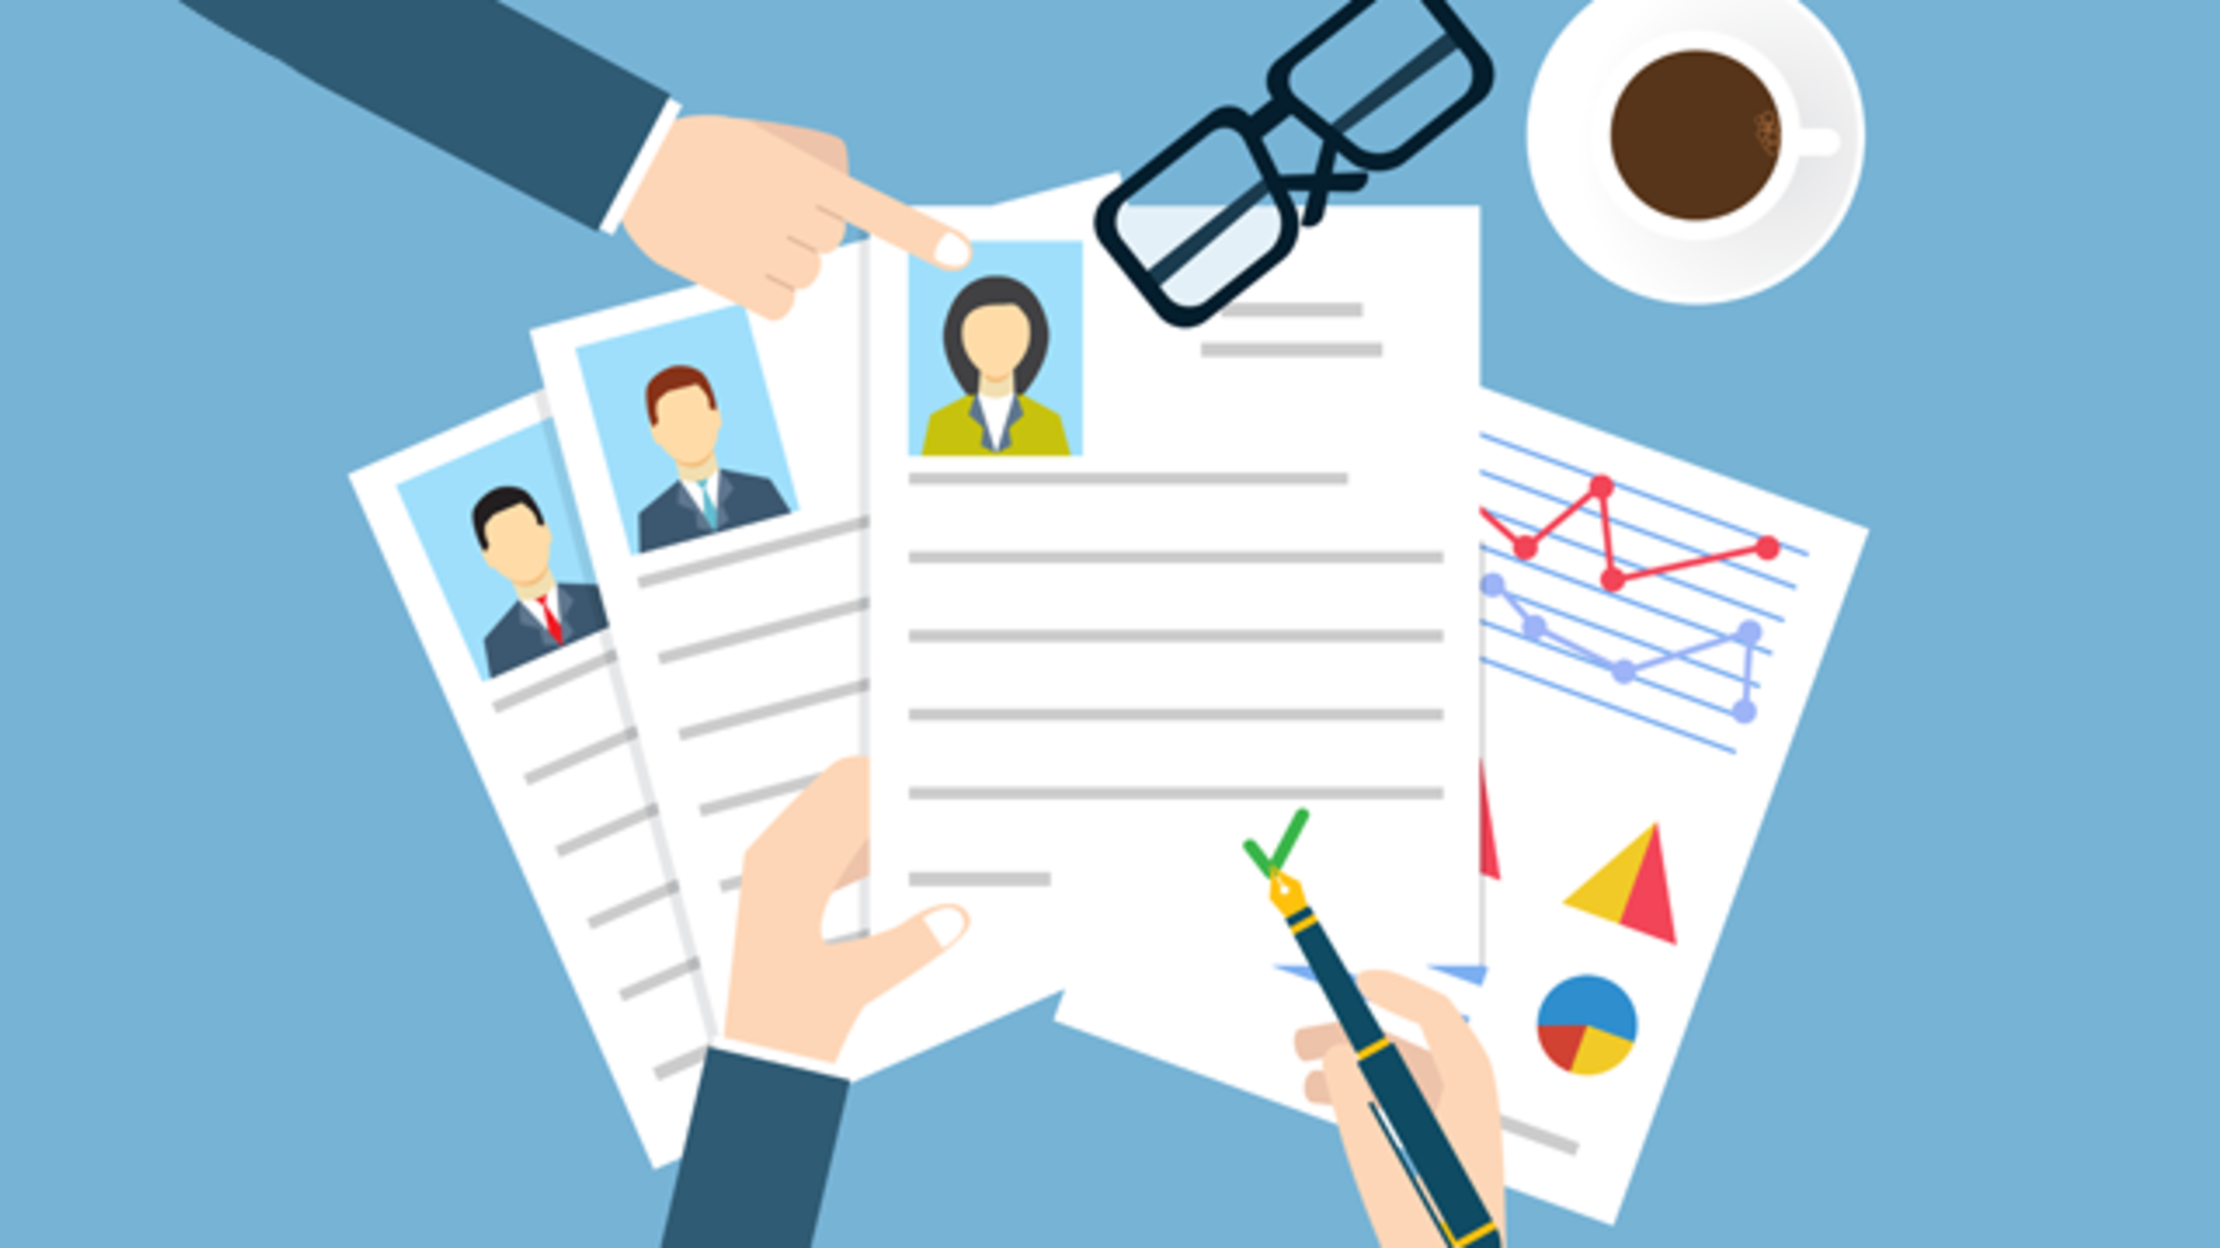 15 Easy Ways To Make Your Resume Stand Out From The Pack